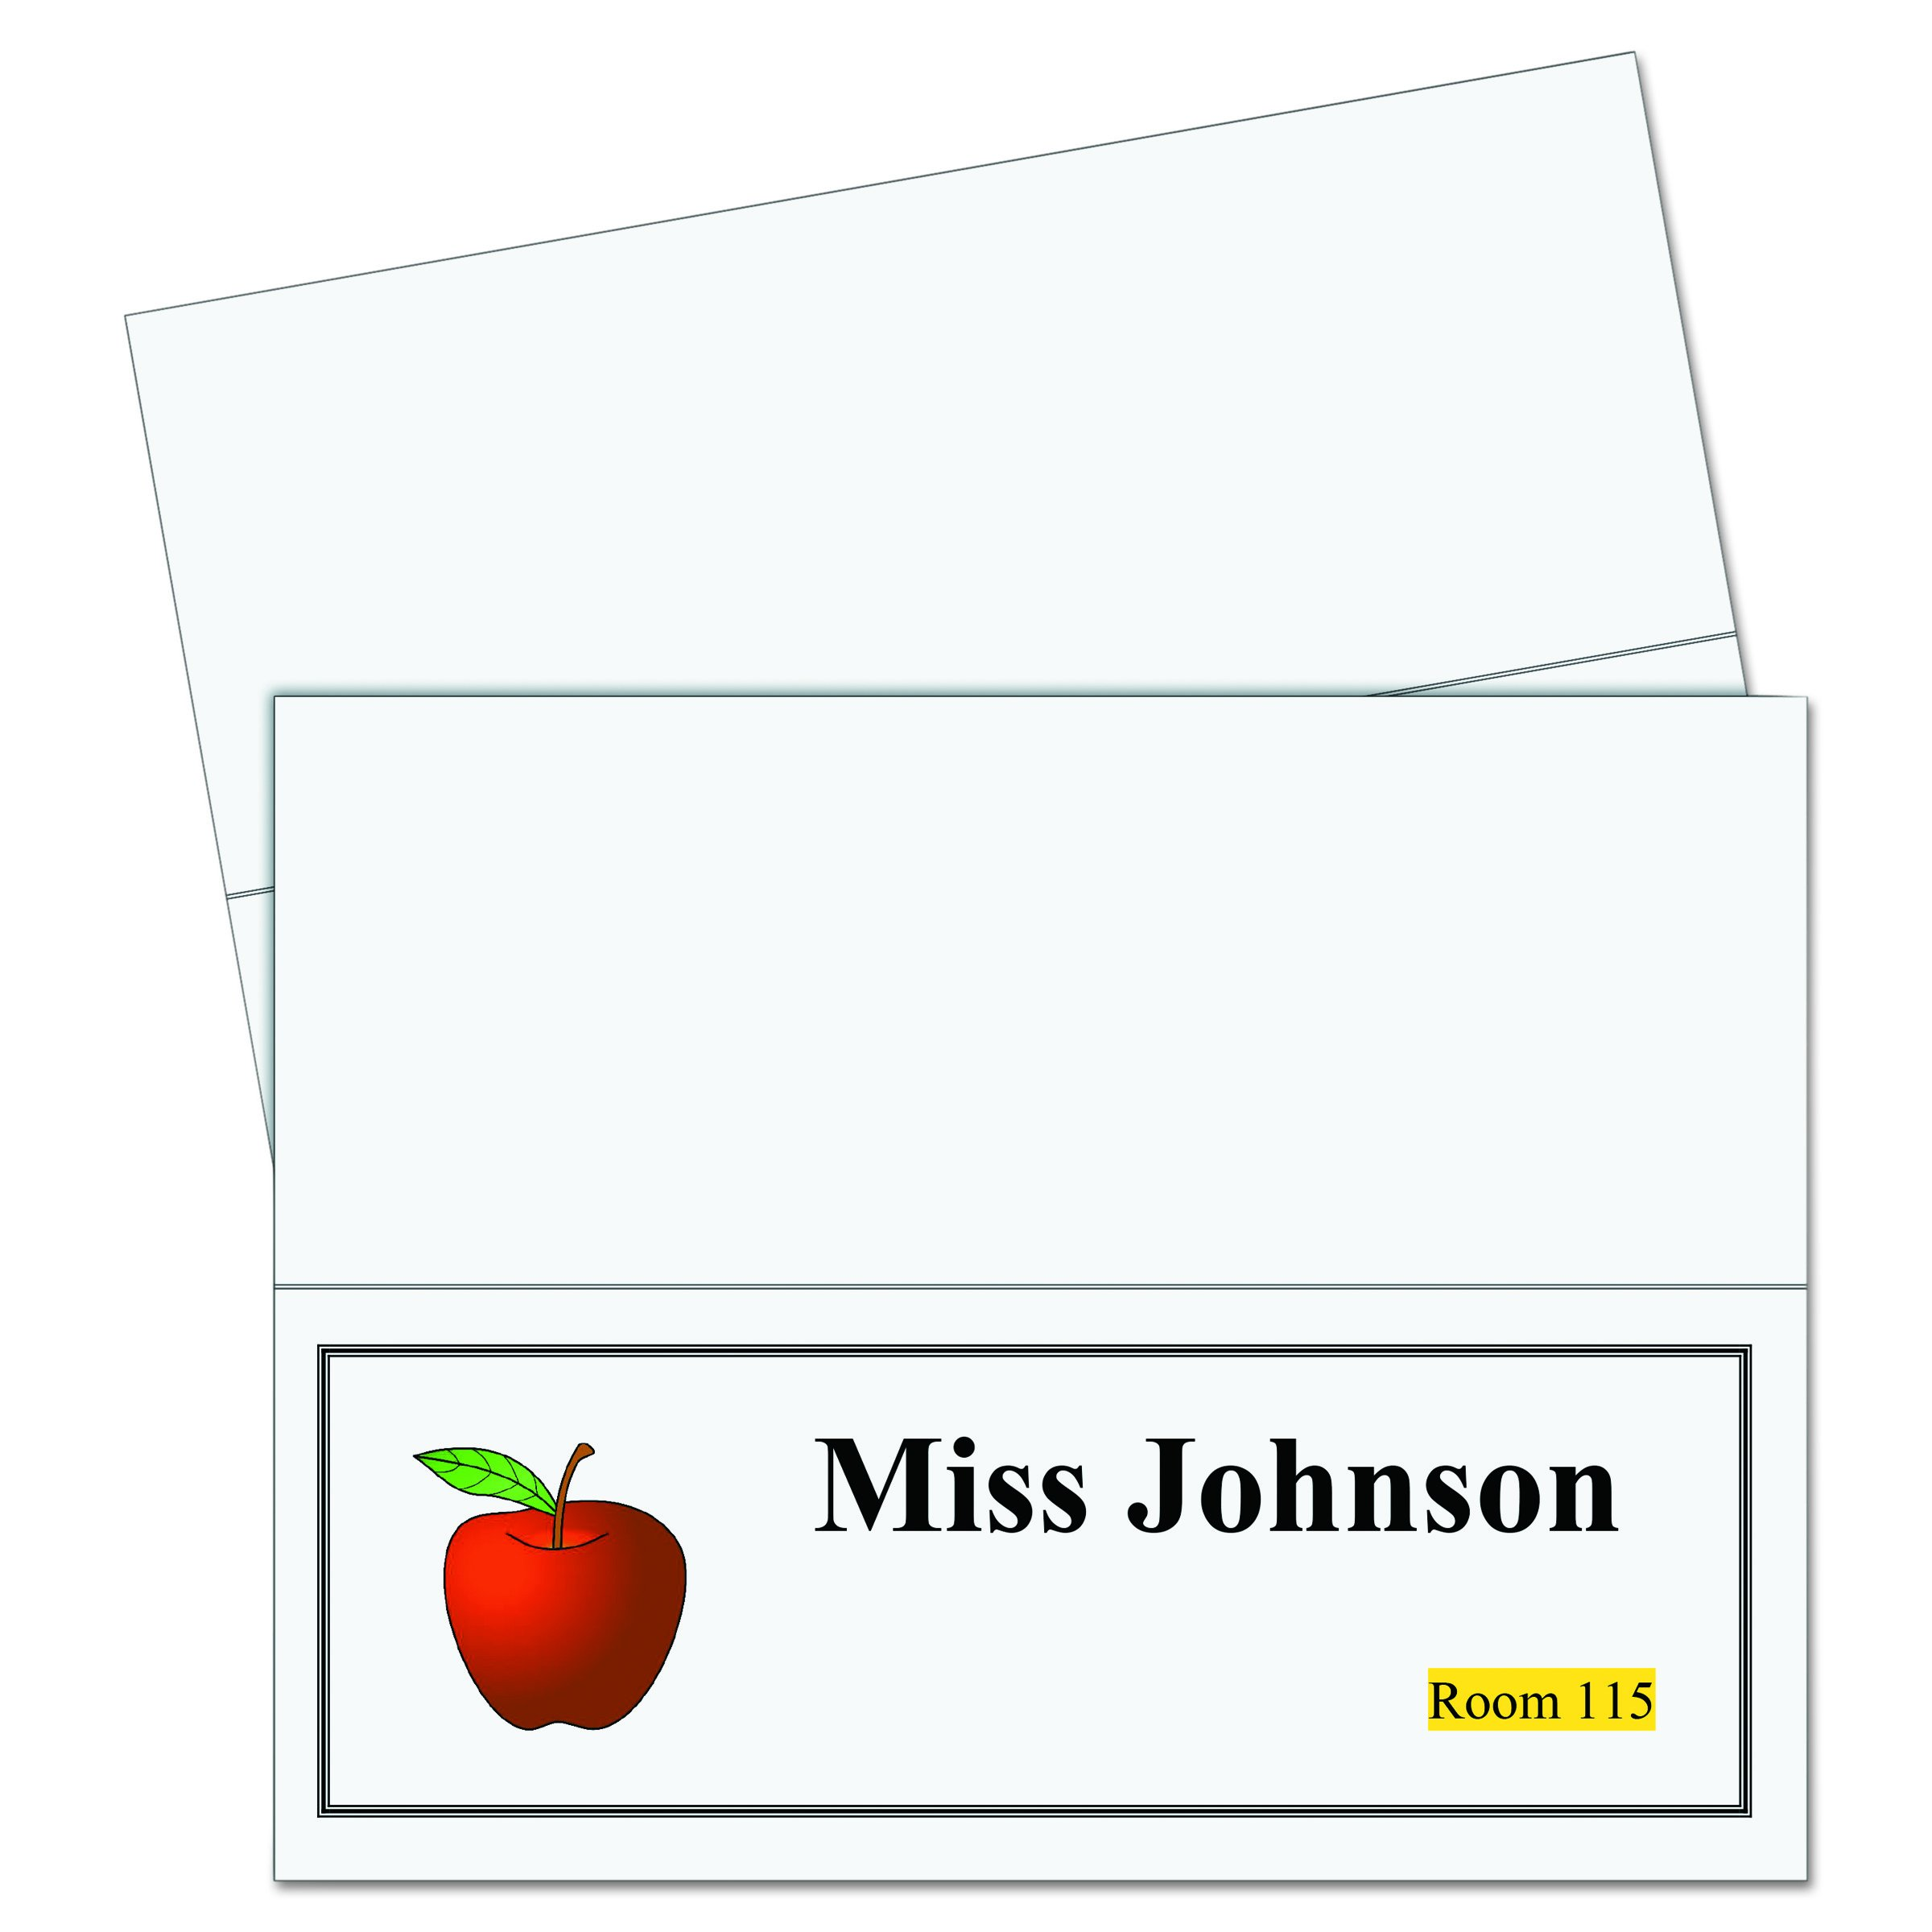 C-Line Printer-Ready Scored Name Tent Cards, 11 x 4-1/4 Inches (Folded Size), 8-1/2'' x 11'' White Cardstock Sheets, Box of 50 (87517) by C-Line